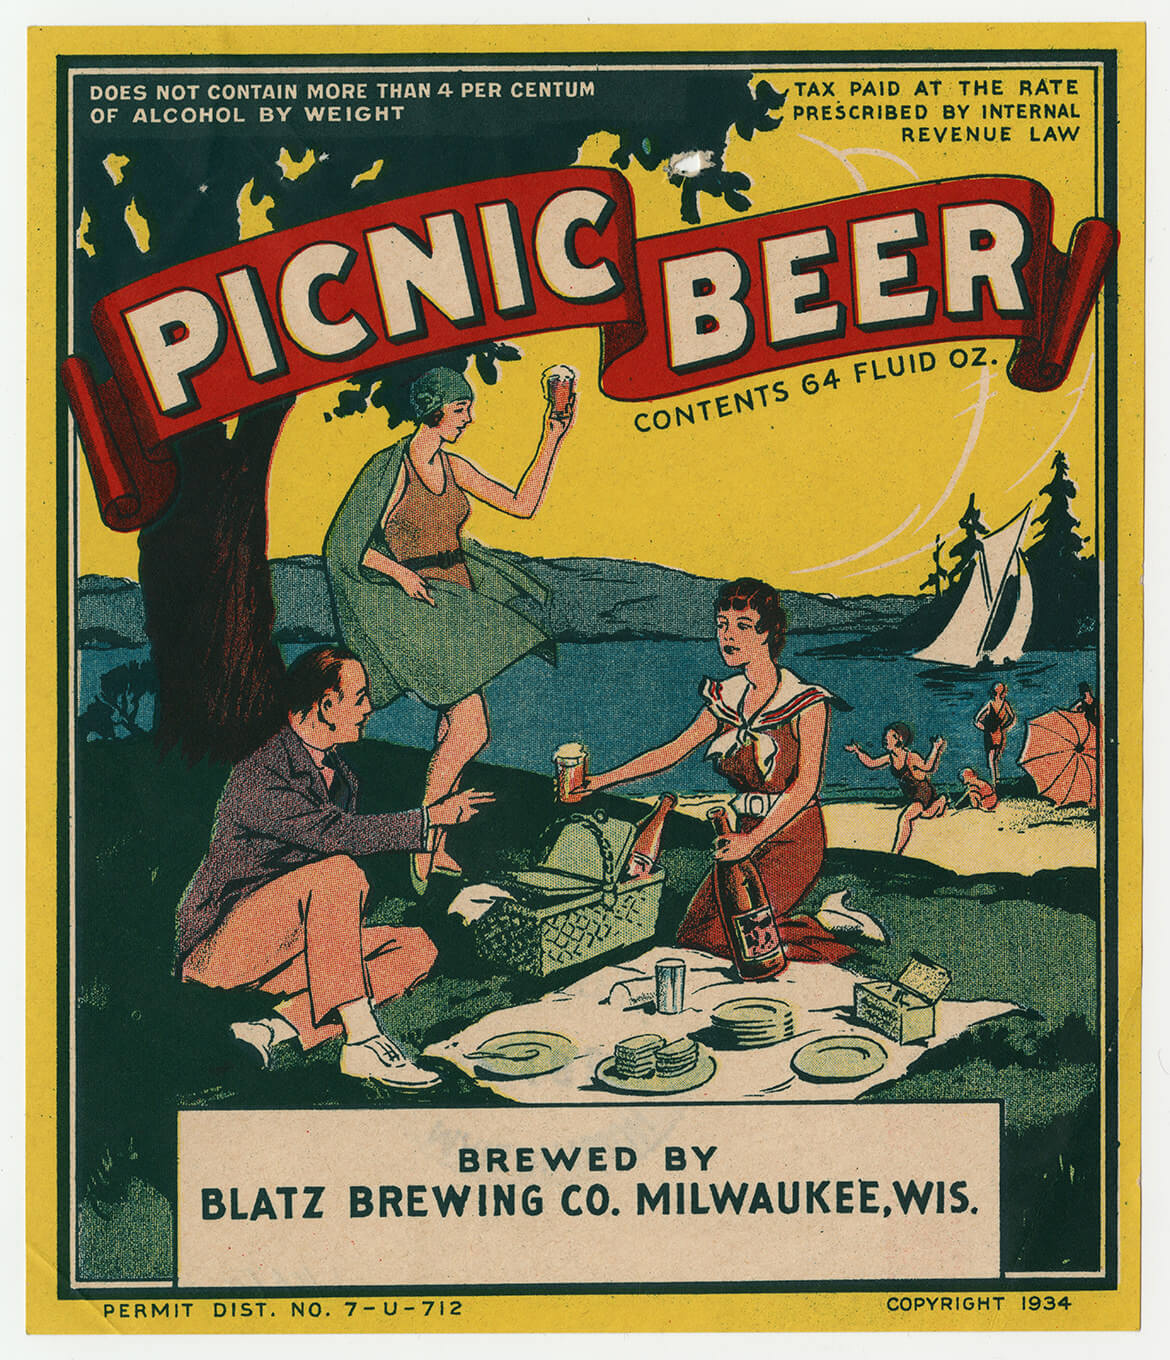 Picnic Beer